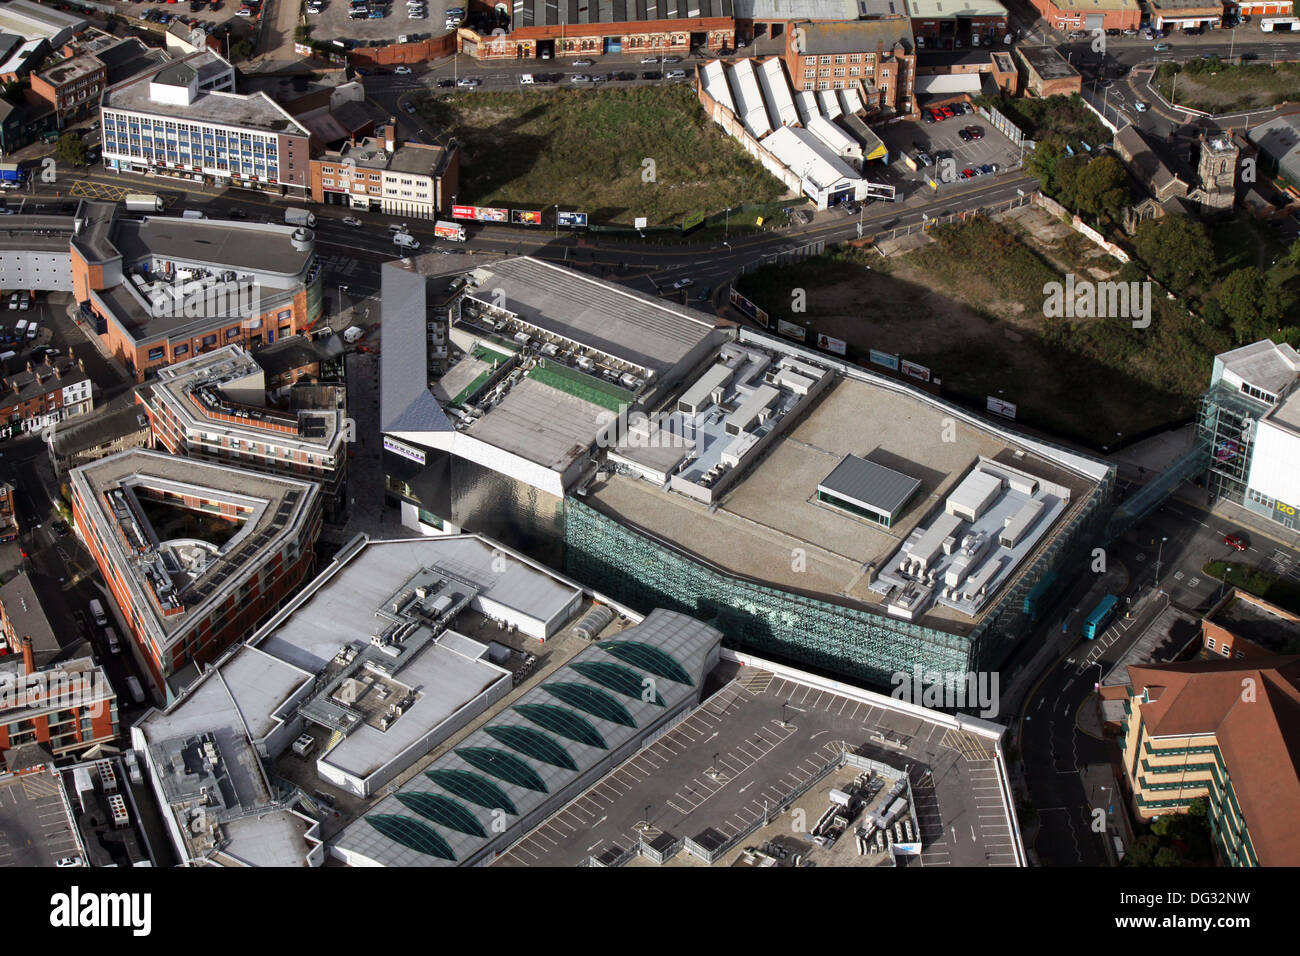 aerial view of Showcase Leicester Cinema de Lux - Stock Image